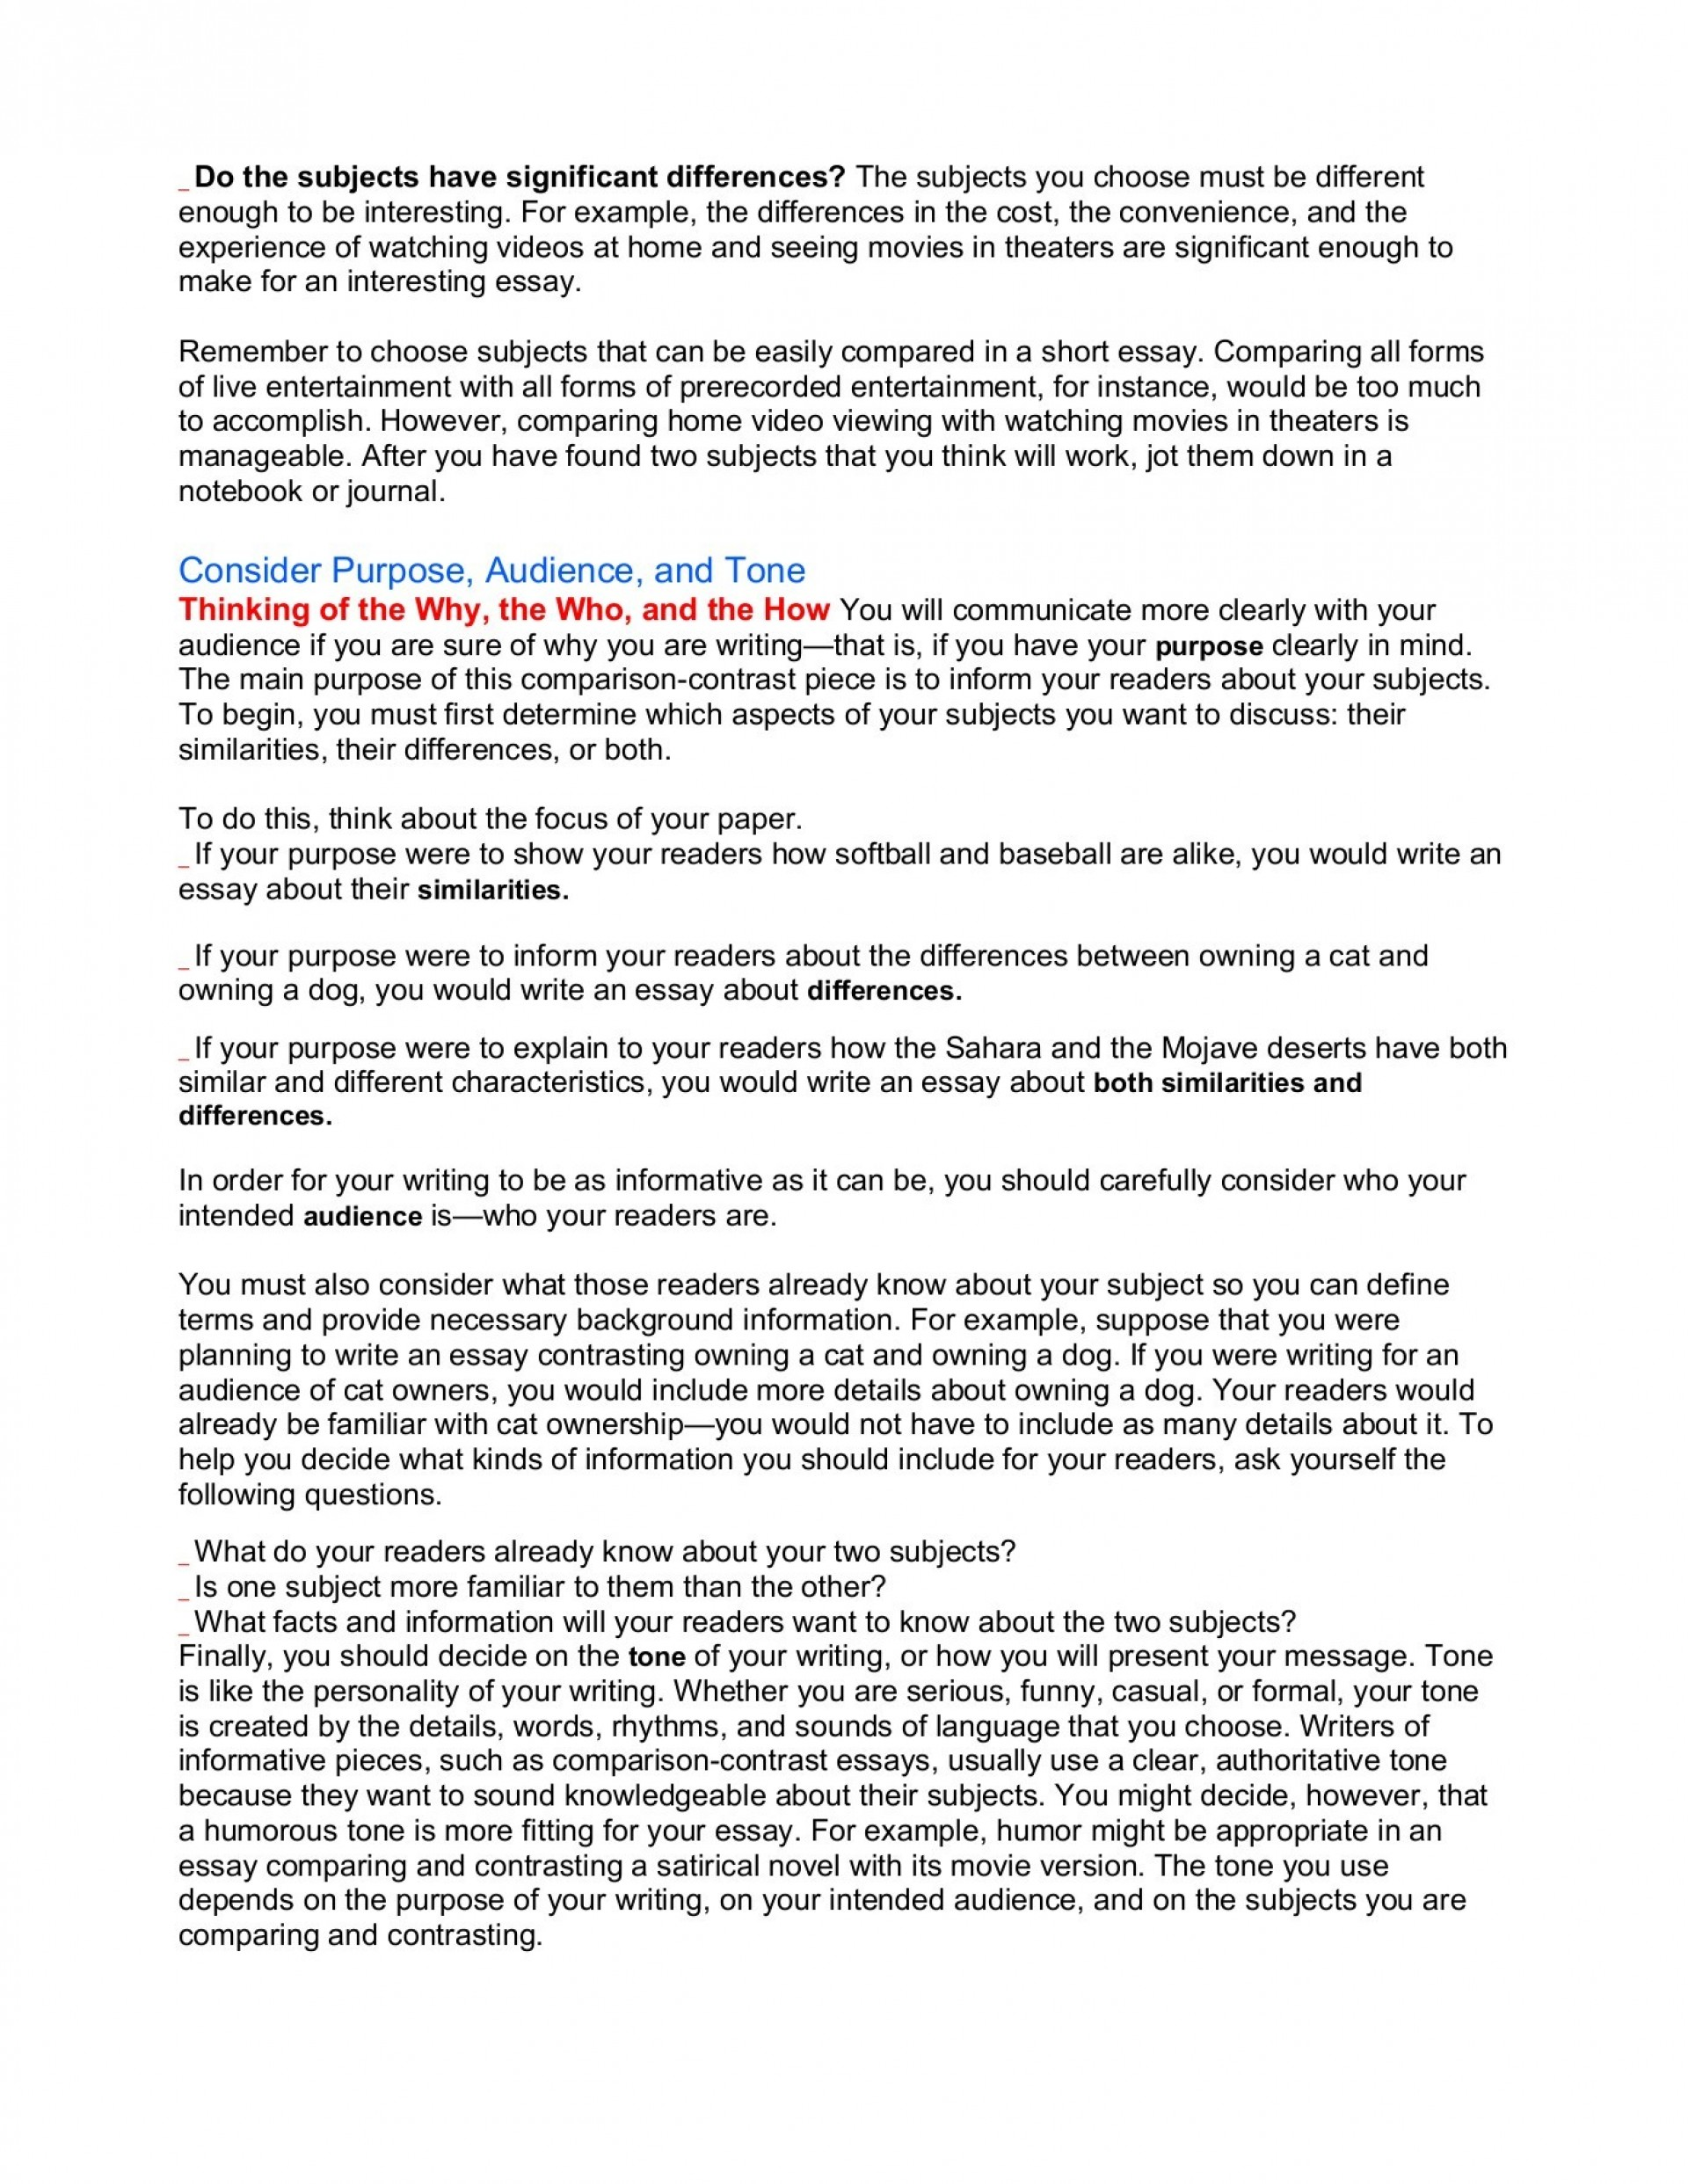 012 Comparing And Contrasting Essay Unique Compare Contrast Topics Easy Sample 6th Grade Outline Middle School 1920